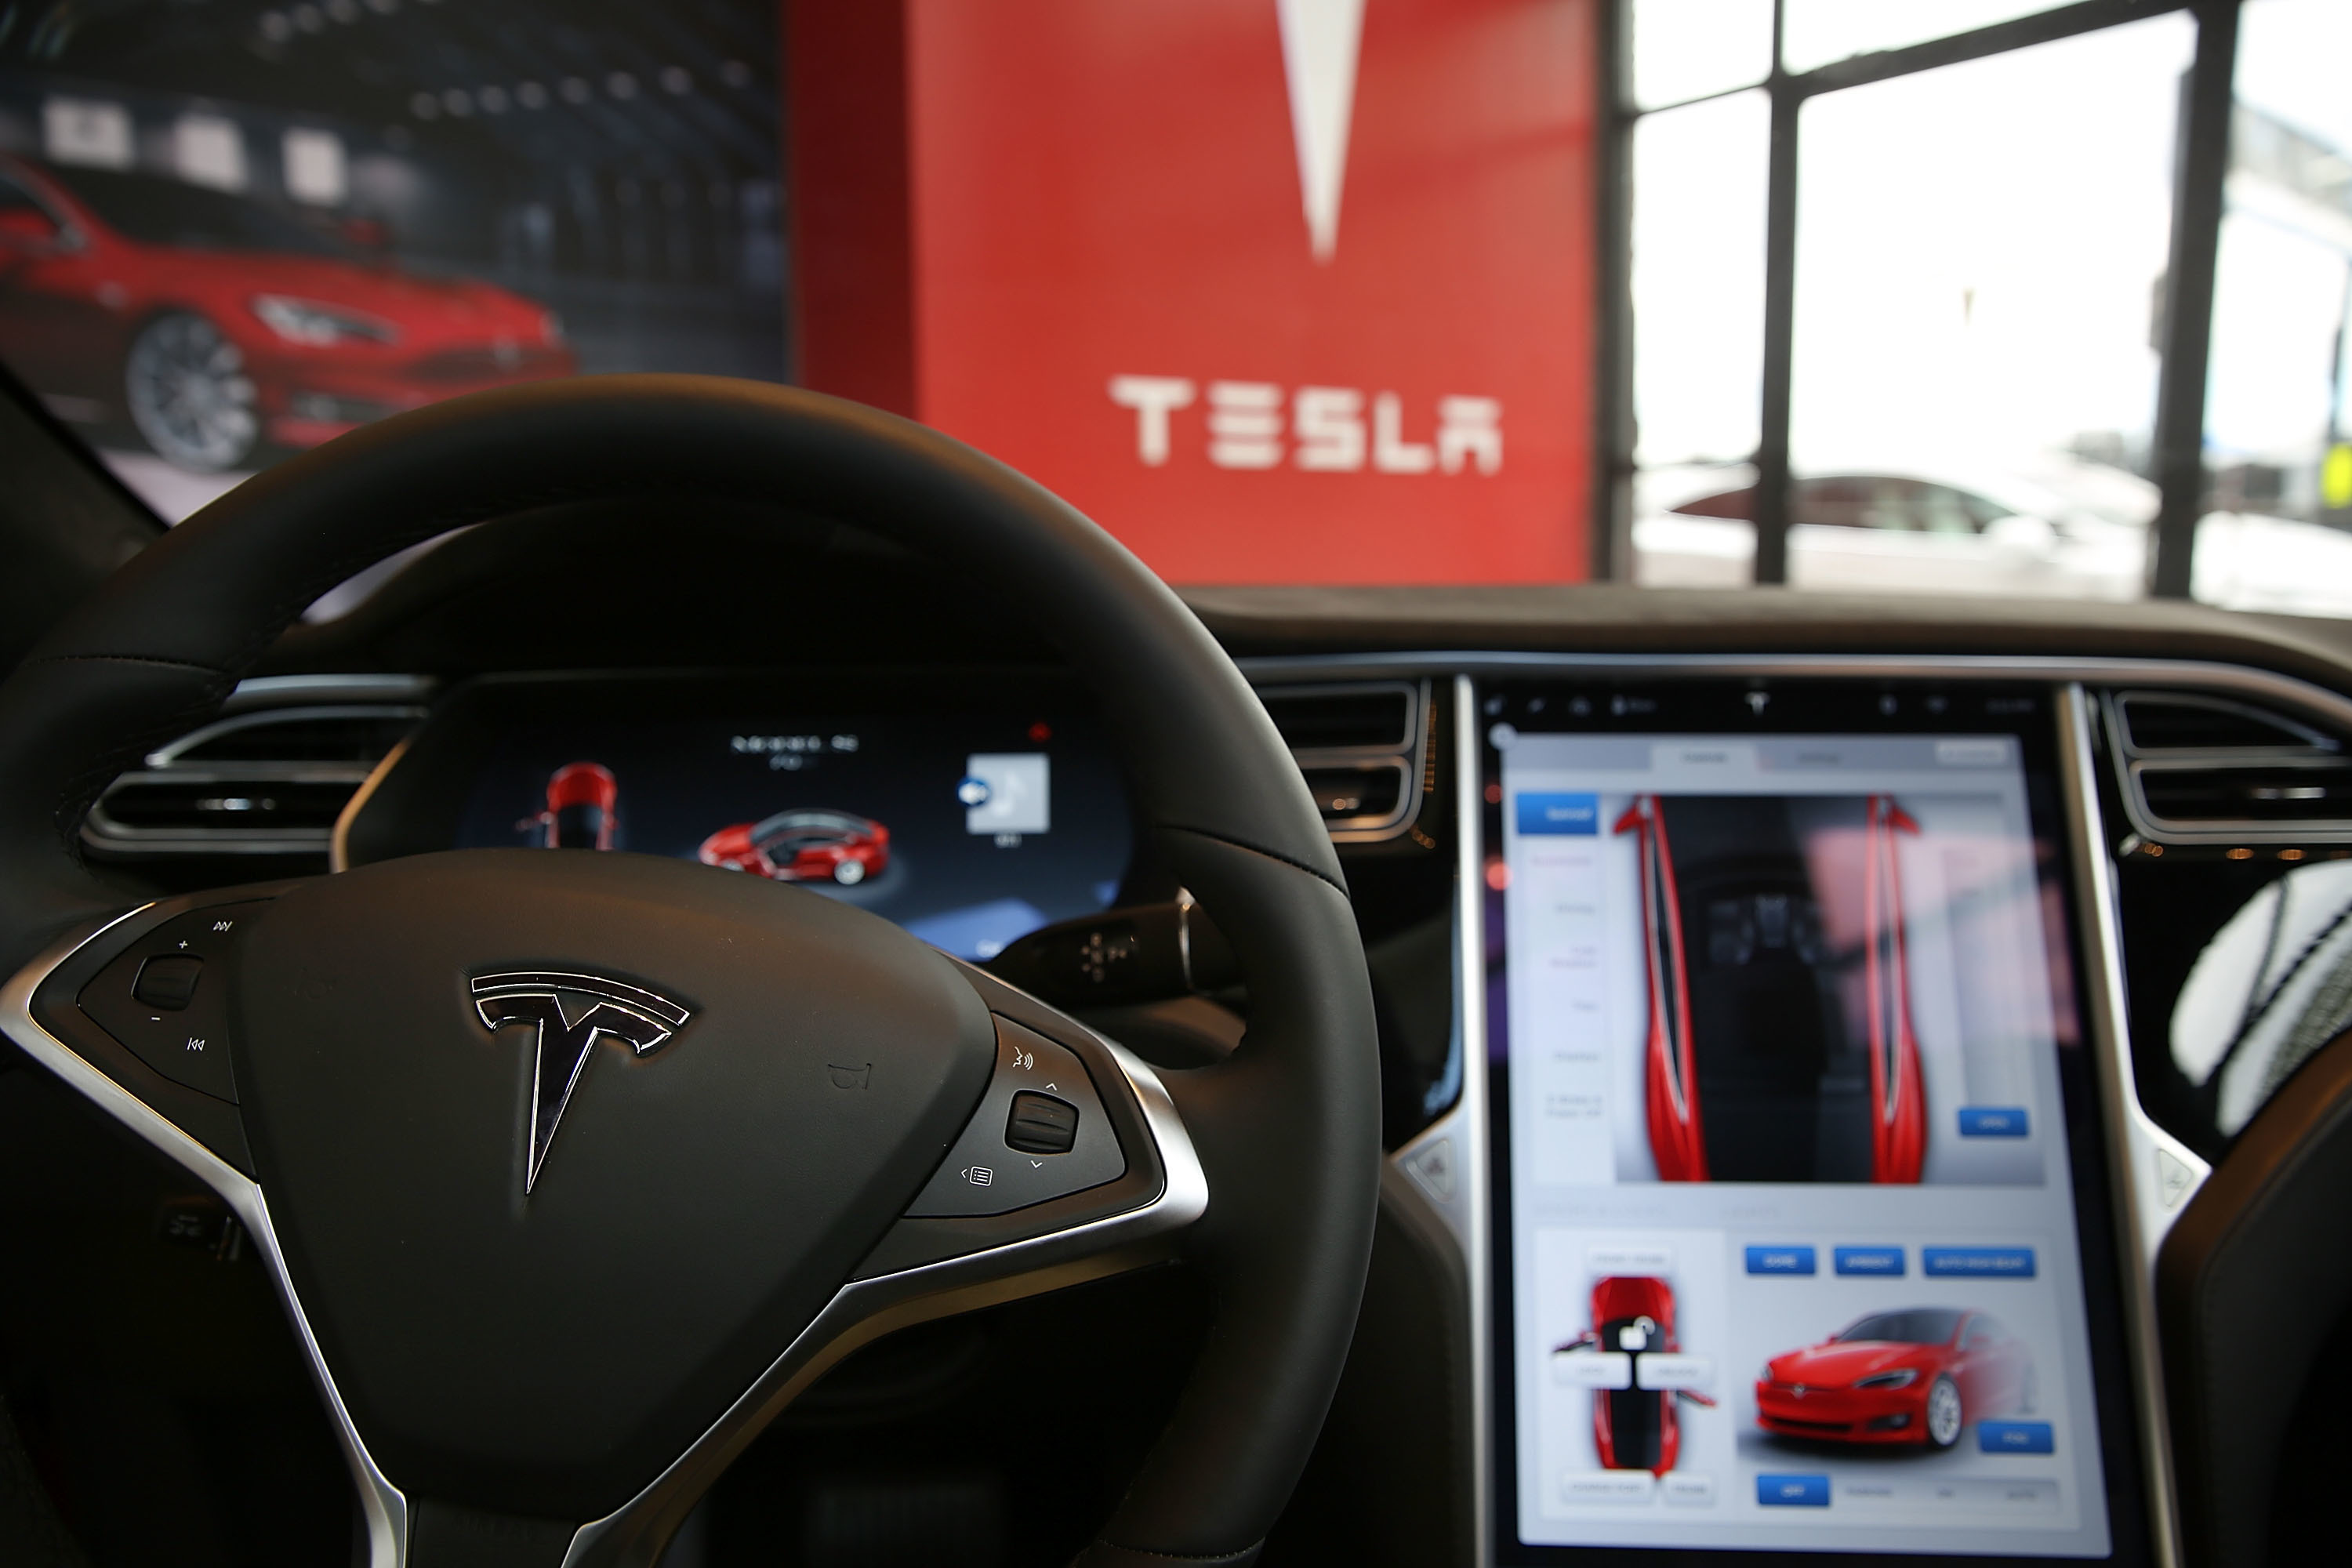 Tesla's vehicles now come with Hardware 2, which will support self-driving in the future.